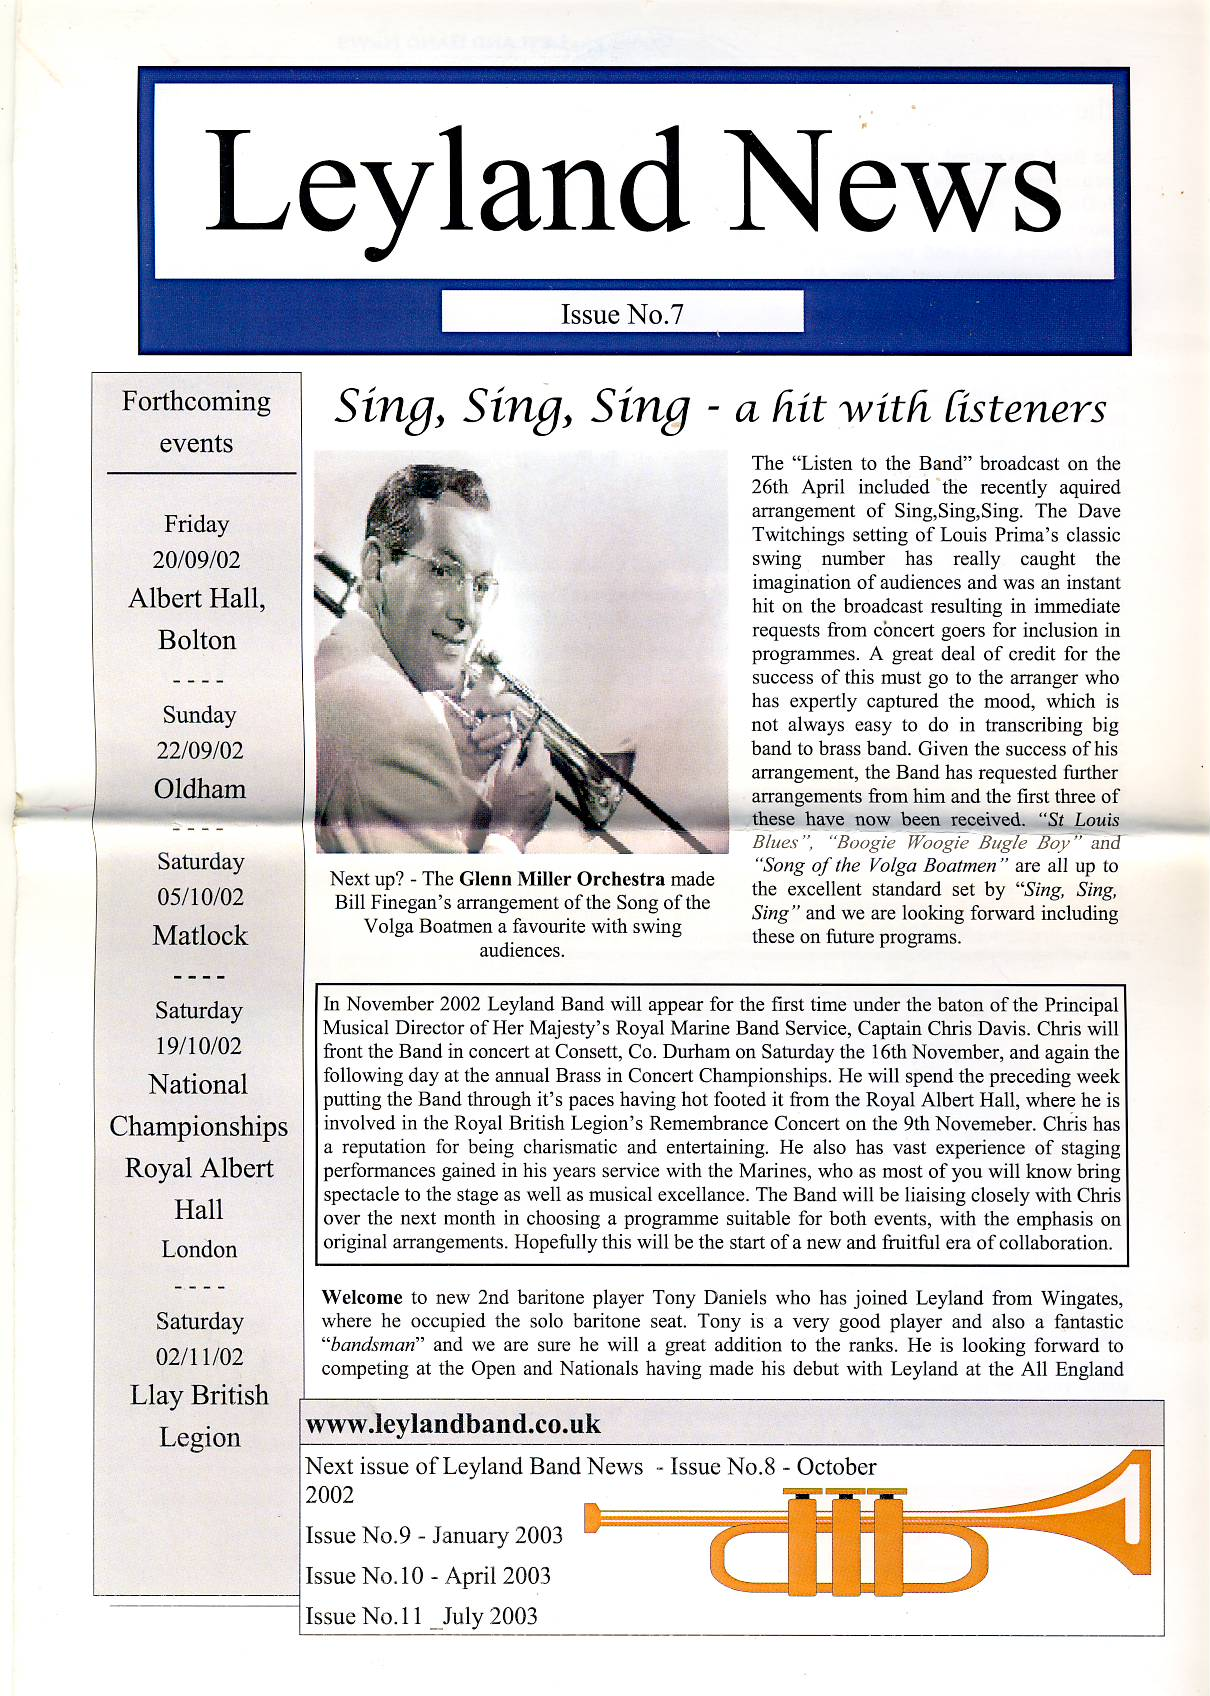 2002 LEYLAND NEWS issue no.7 Glenn Miller Orchestra Leyland Band refS5 4 pages approx 29cm x 21cm - a pre-owned item in very good condition.